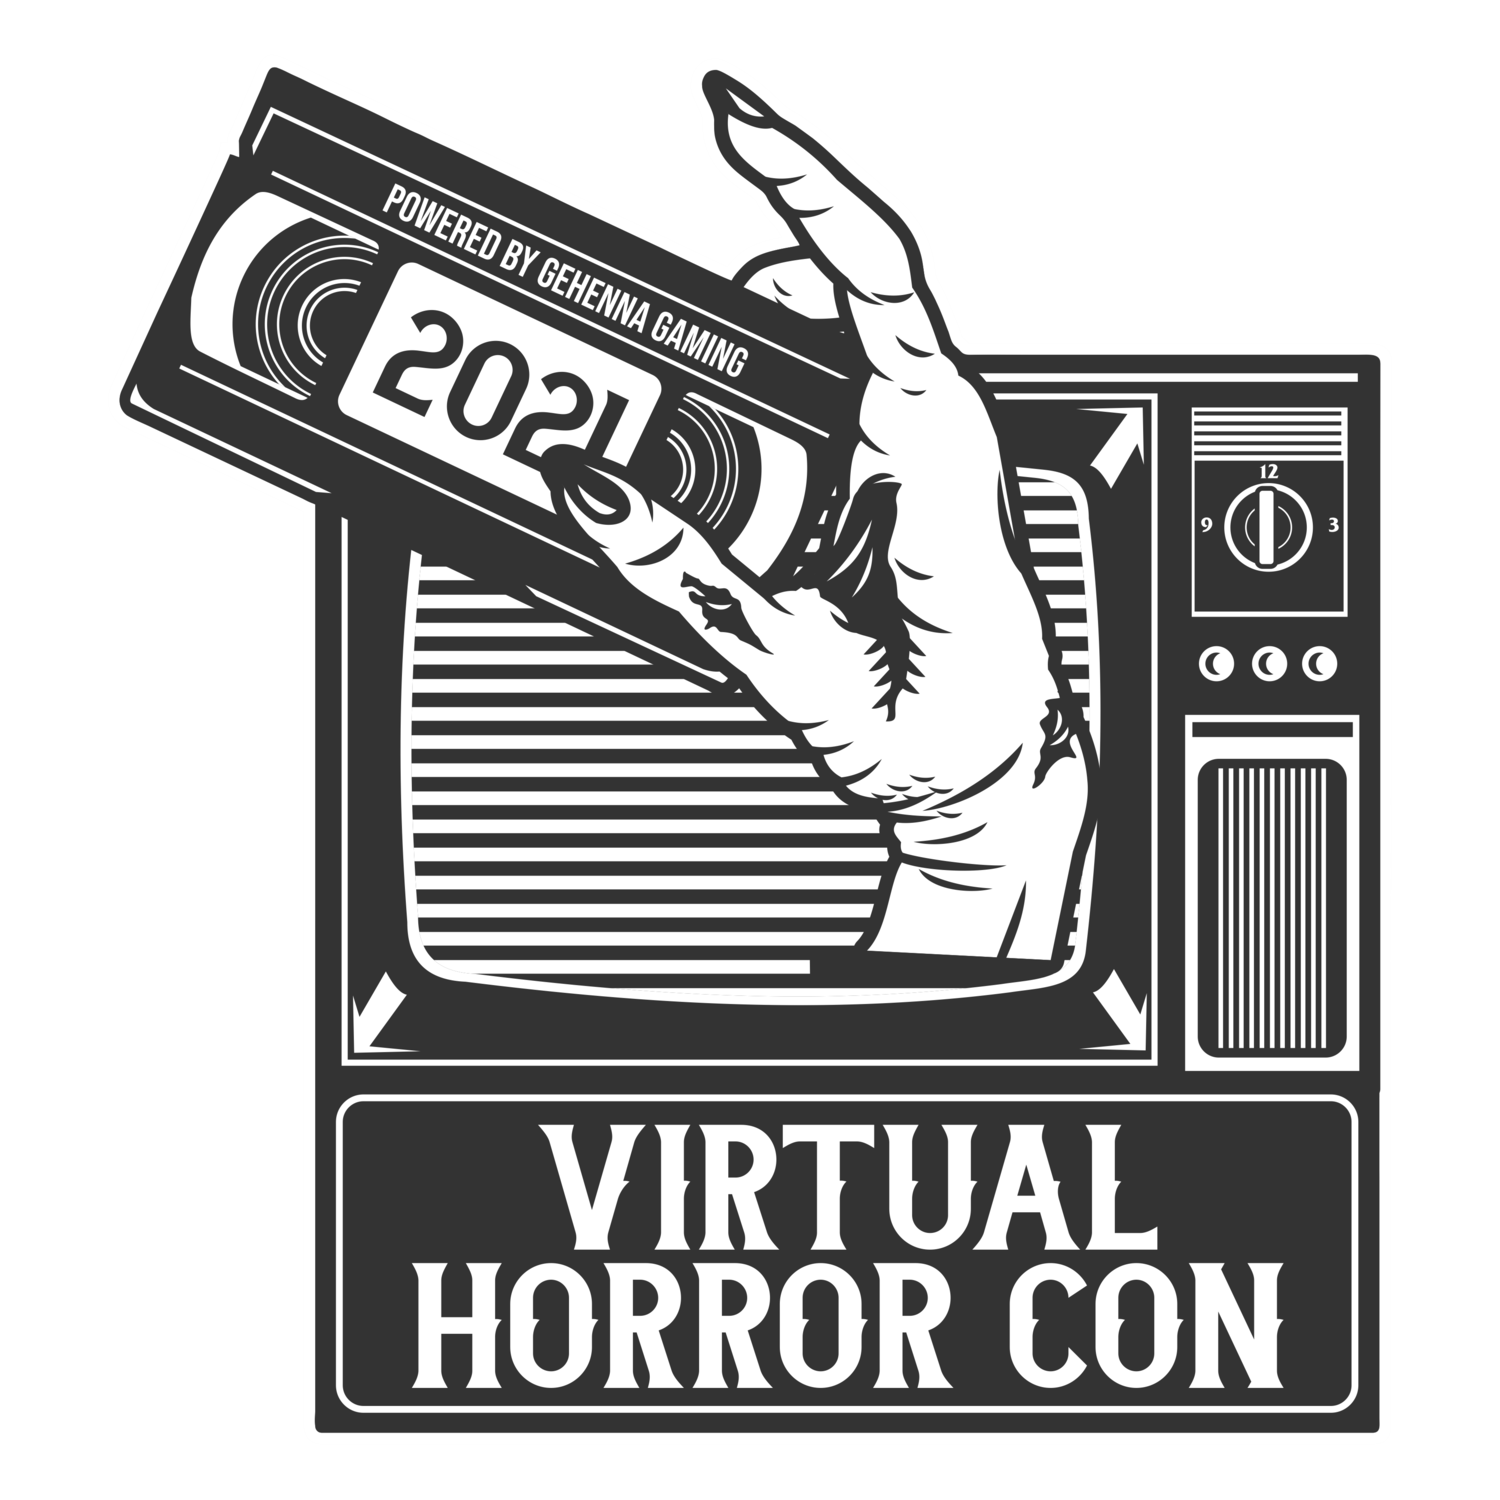 Virtual Horror Con 2021 logo